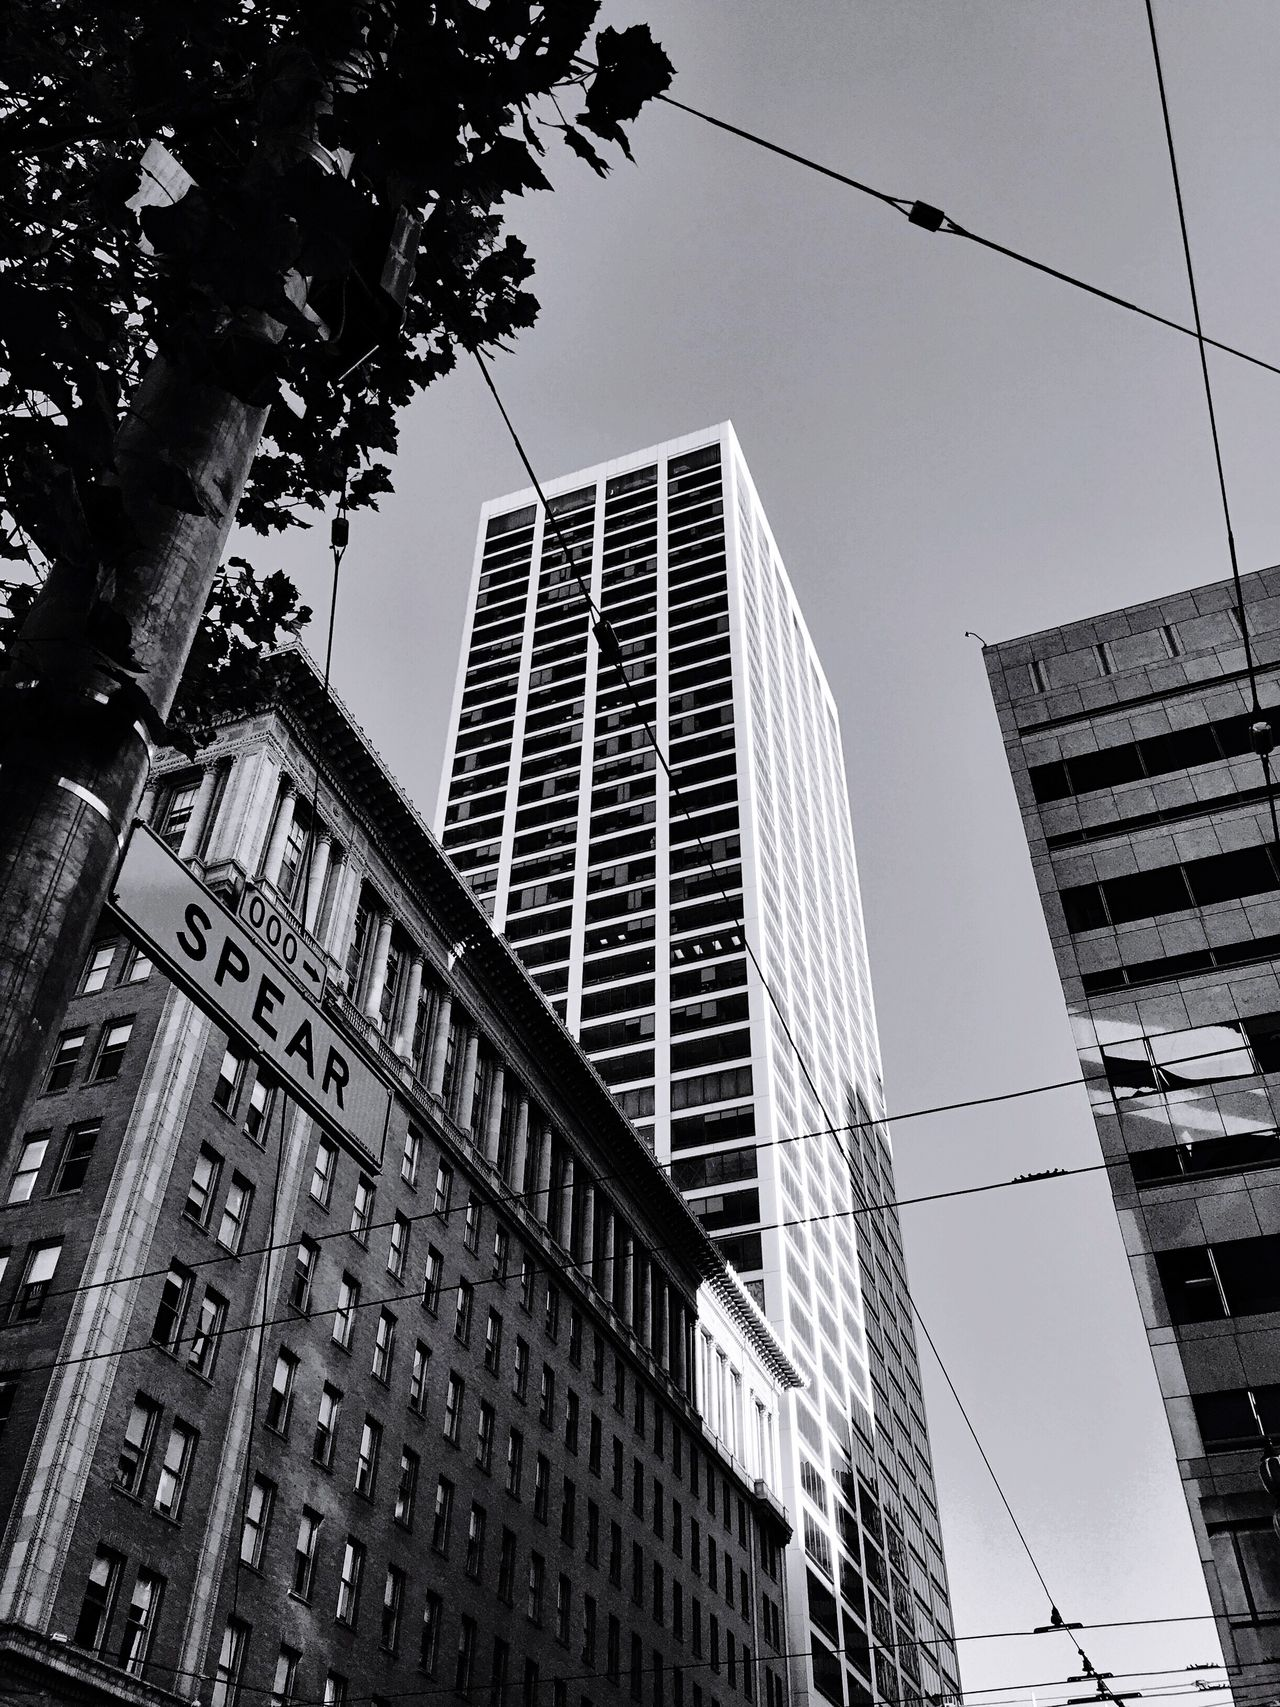 """Like a Spear"" A tall building emerges spear like at Market and Spear streets in San Francisco, California. Architecture Architecture_collection Architecturelovers Blackandwhite Blackandwhite Photography Skyscrapers Urban Geometry Urbanphotography Urbanexploration San Francisco"